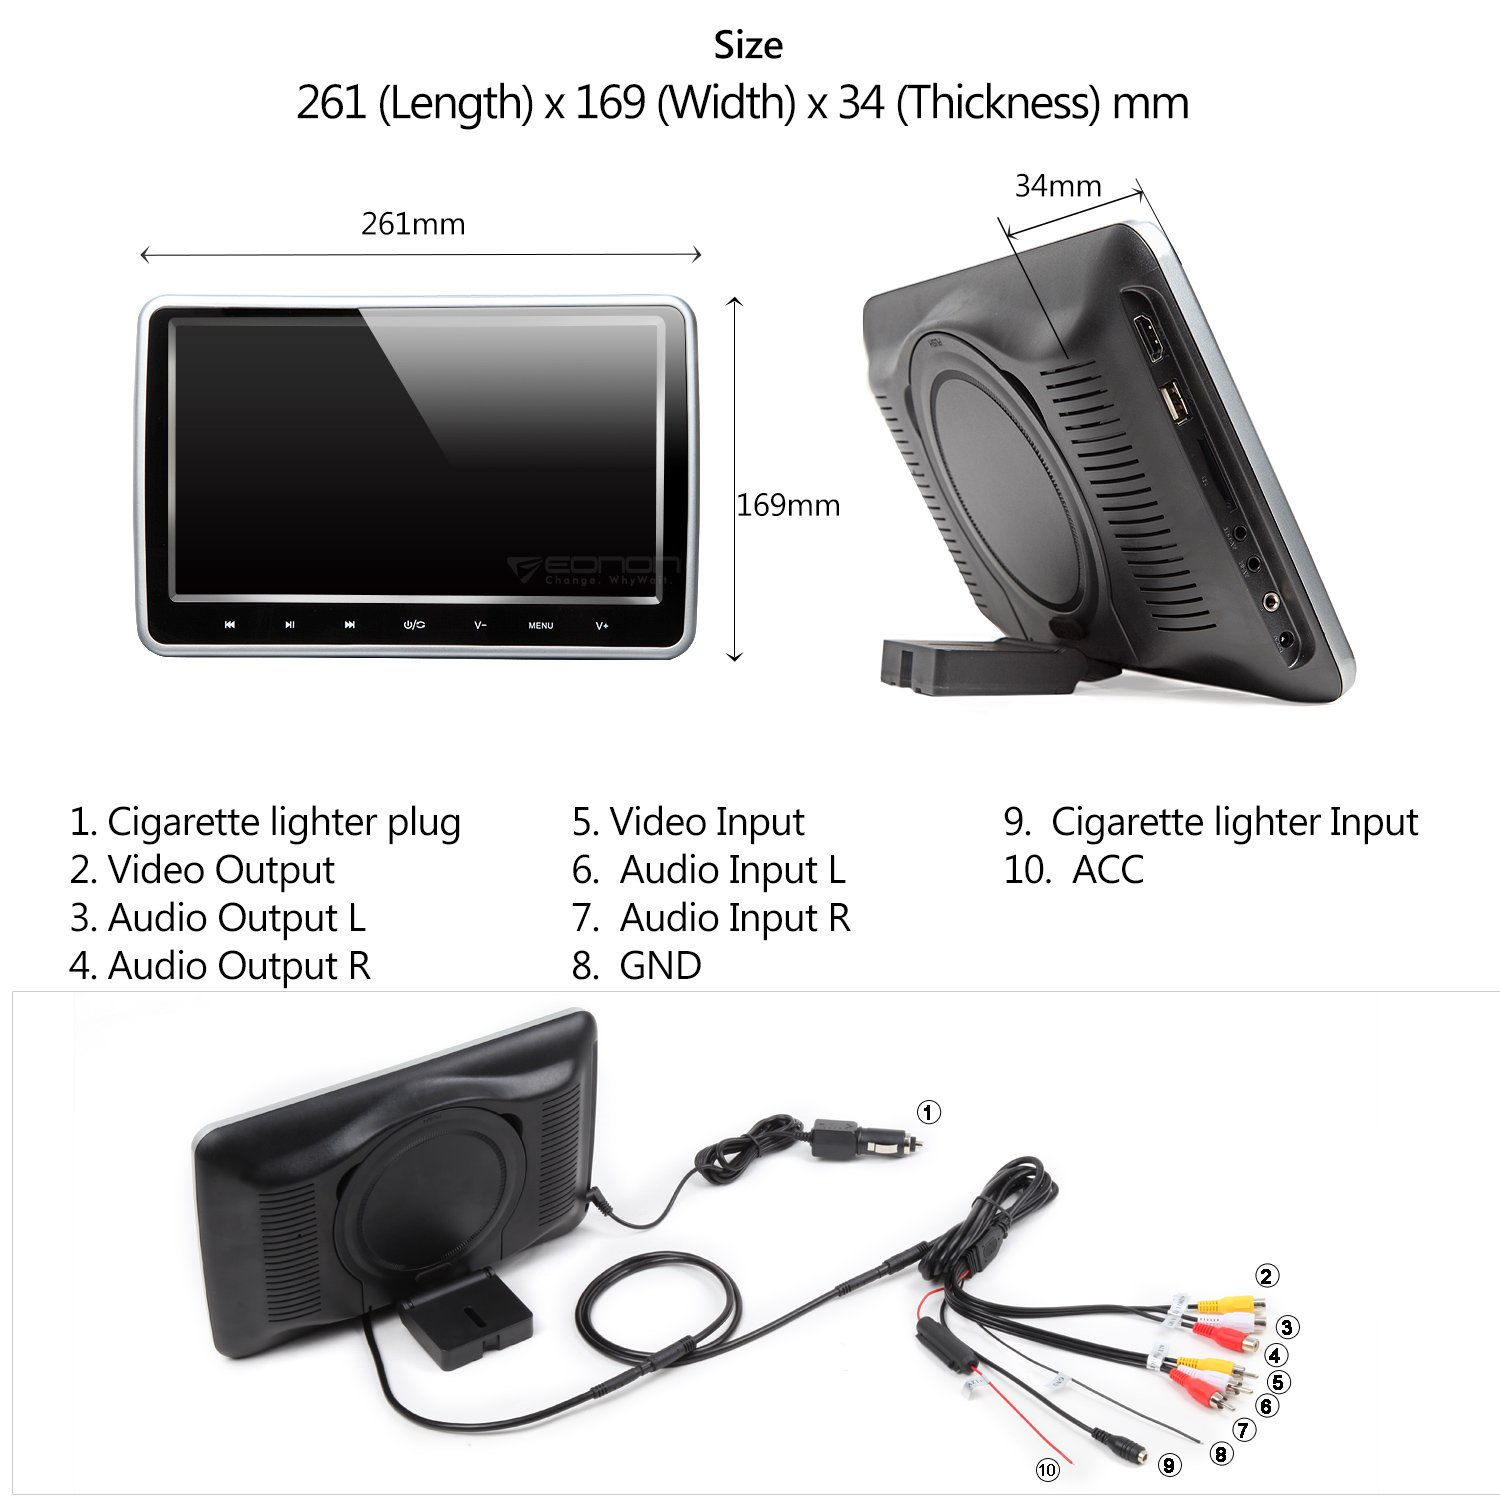 Eonon C1100A Black 10.1 Inch Clip-on Digital Screen Headrest Monitor with DVD Player One Pair by Eonon (Image #3)